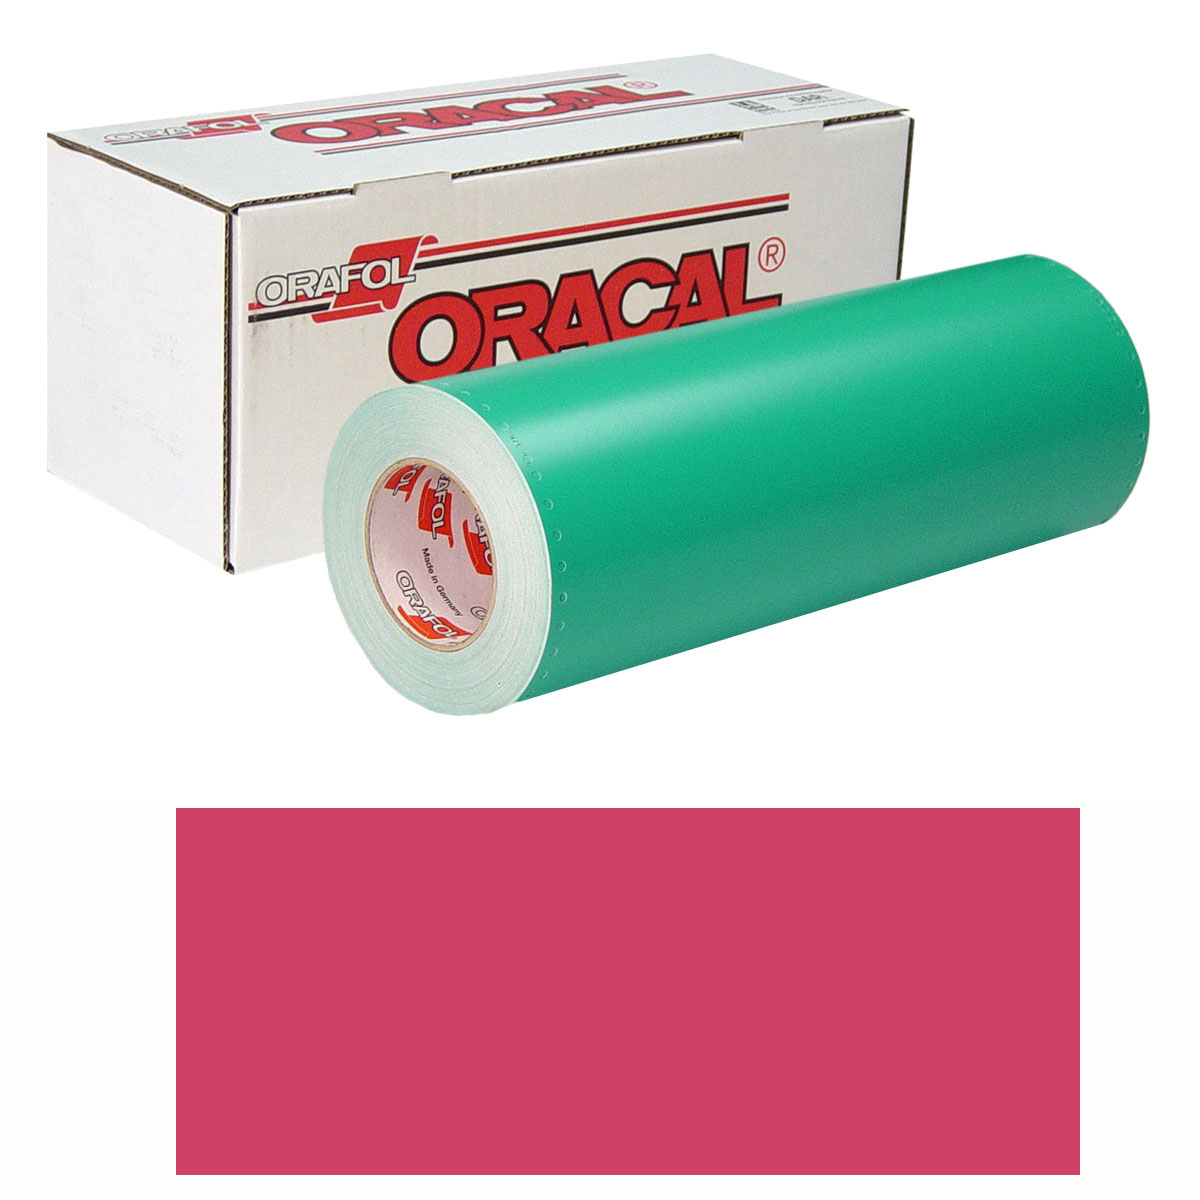 ORACAL 8500 Unp 24in X 50yd 017 Cherry Red